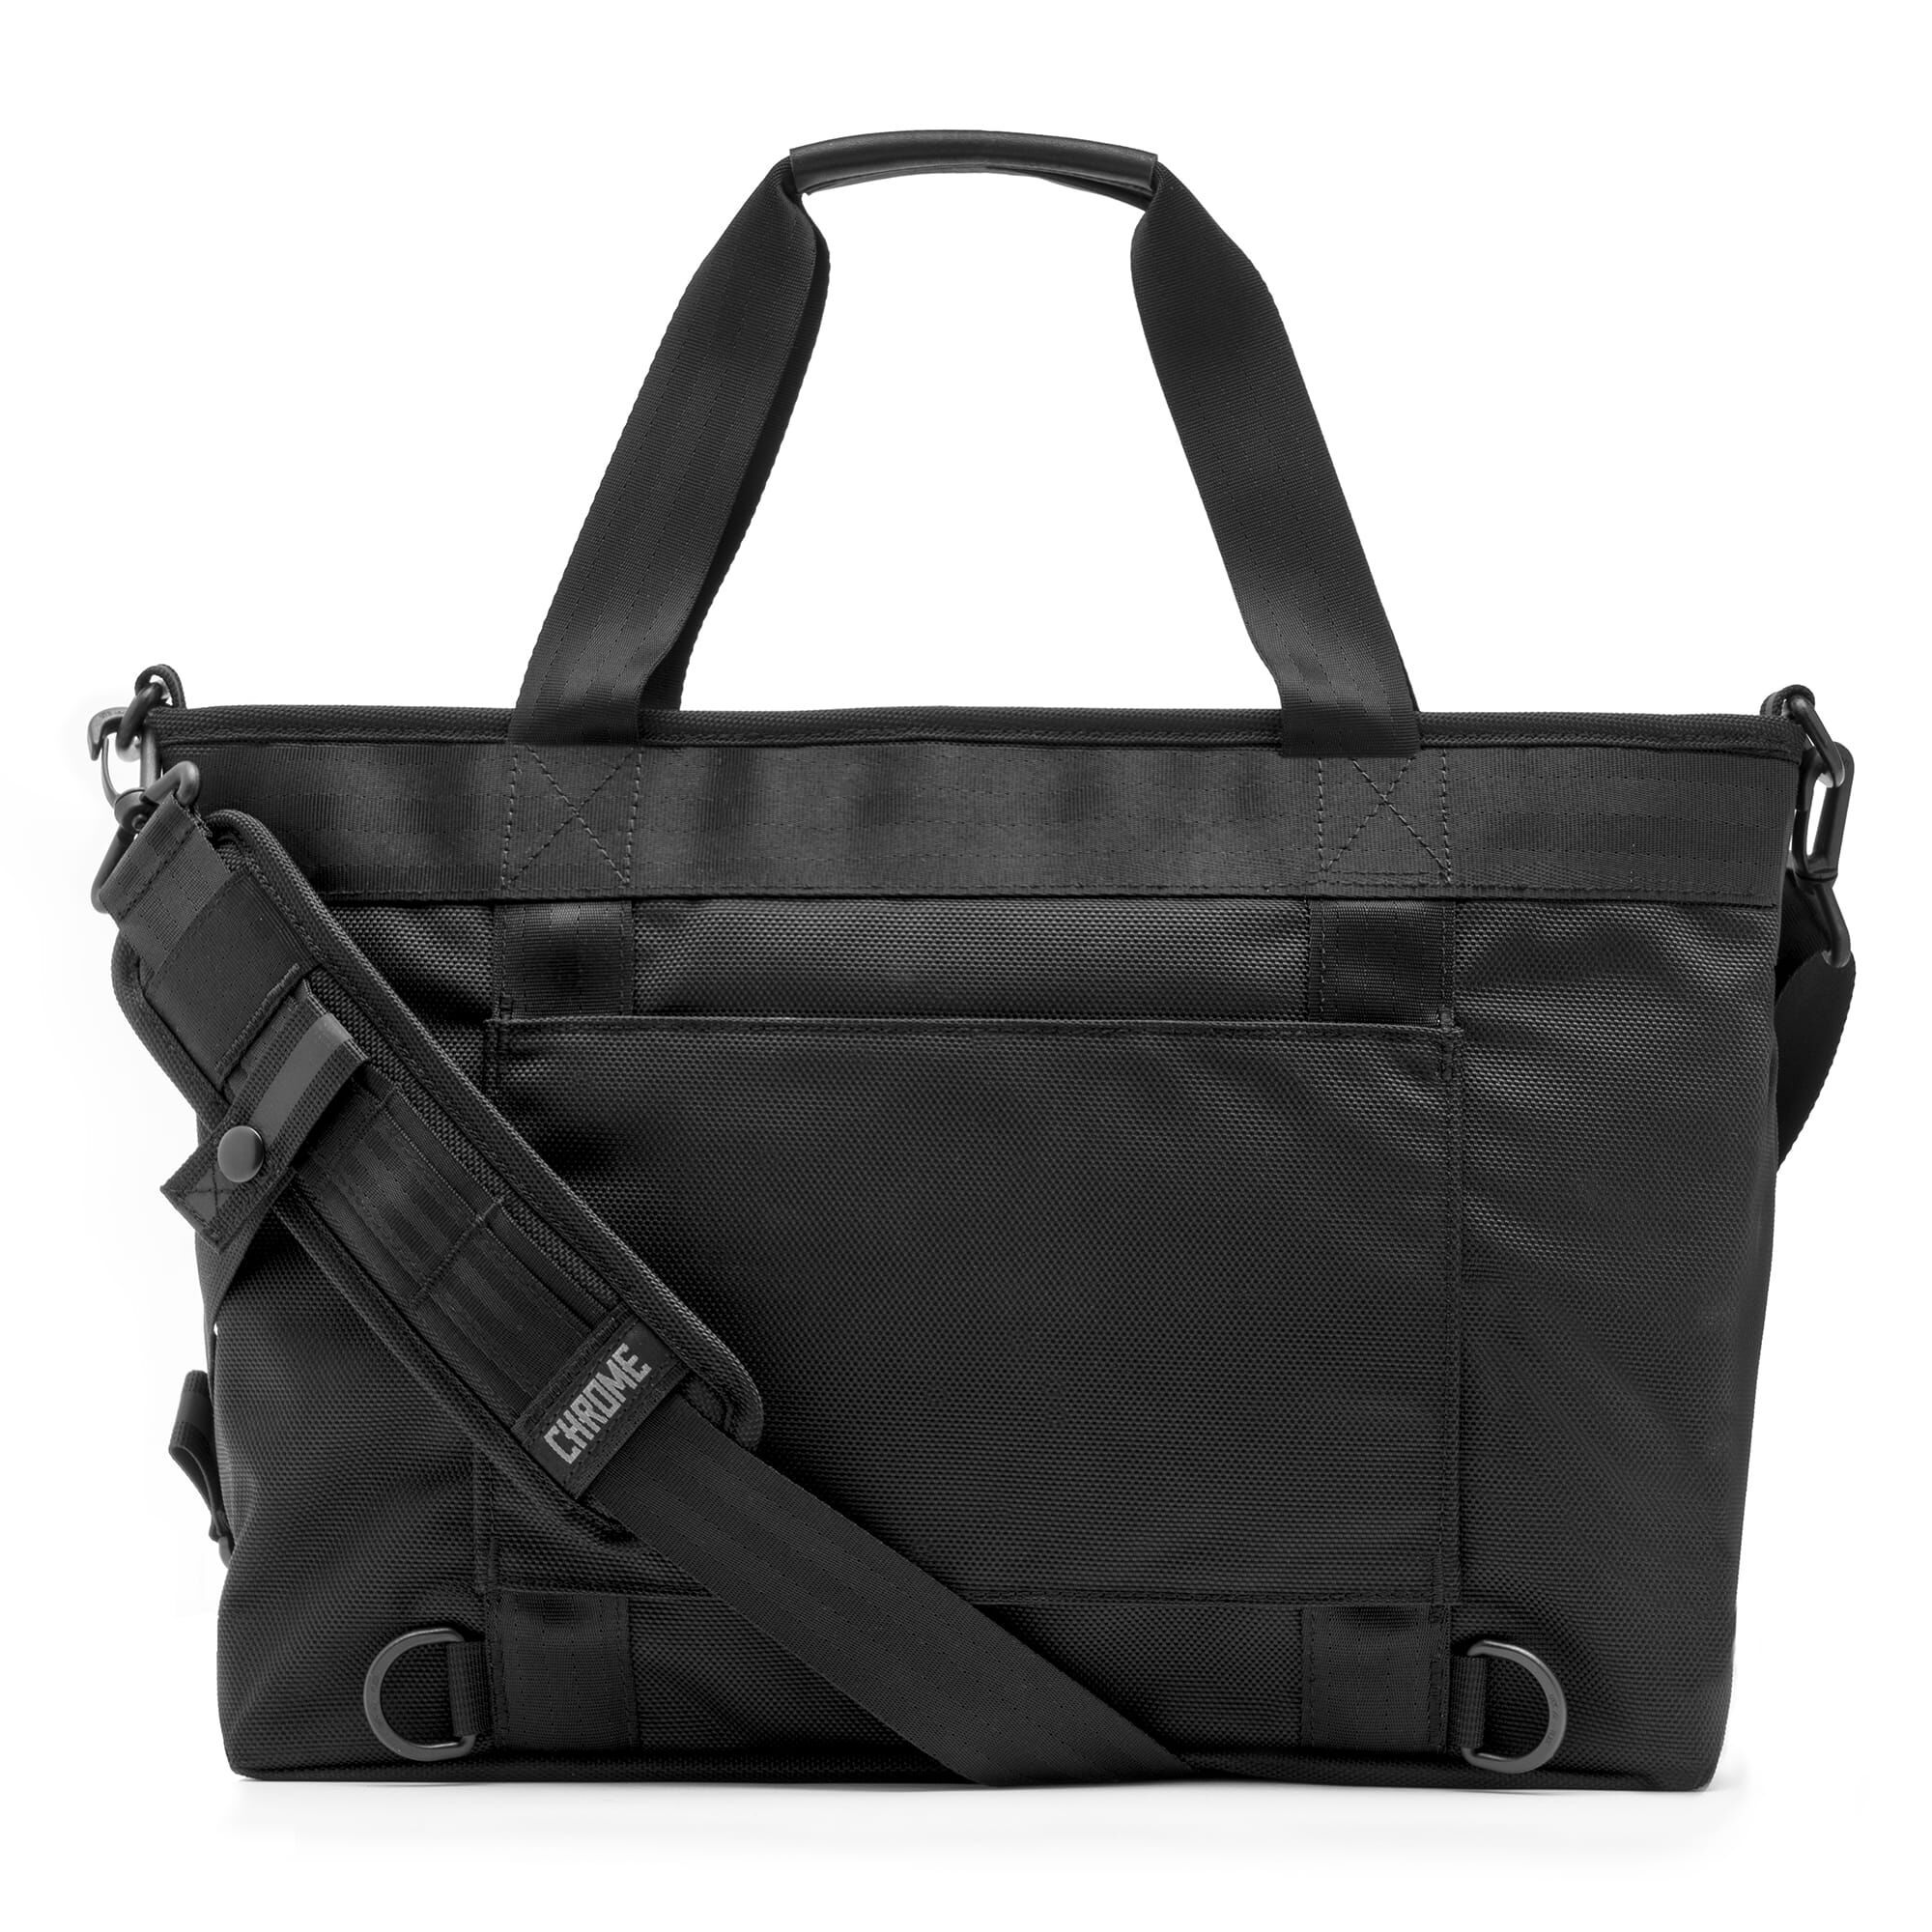 Juno Travel Tote Bag In All Black Small View